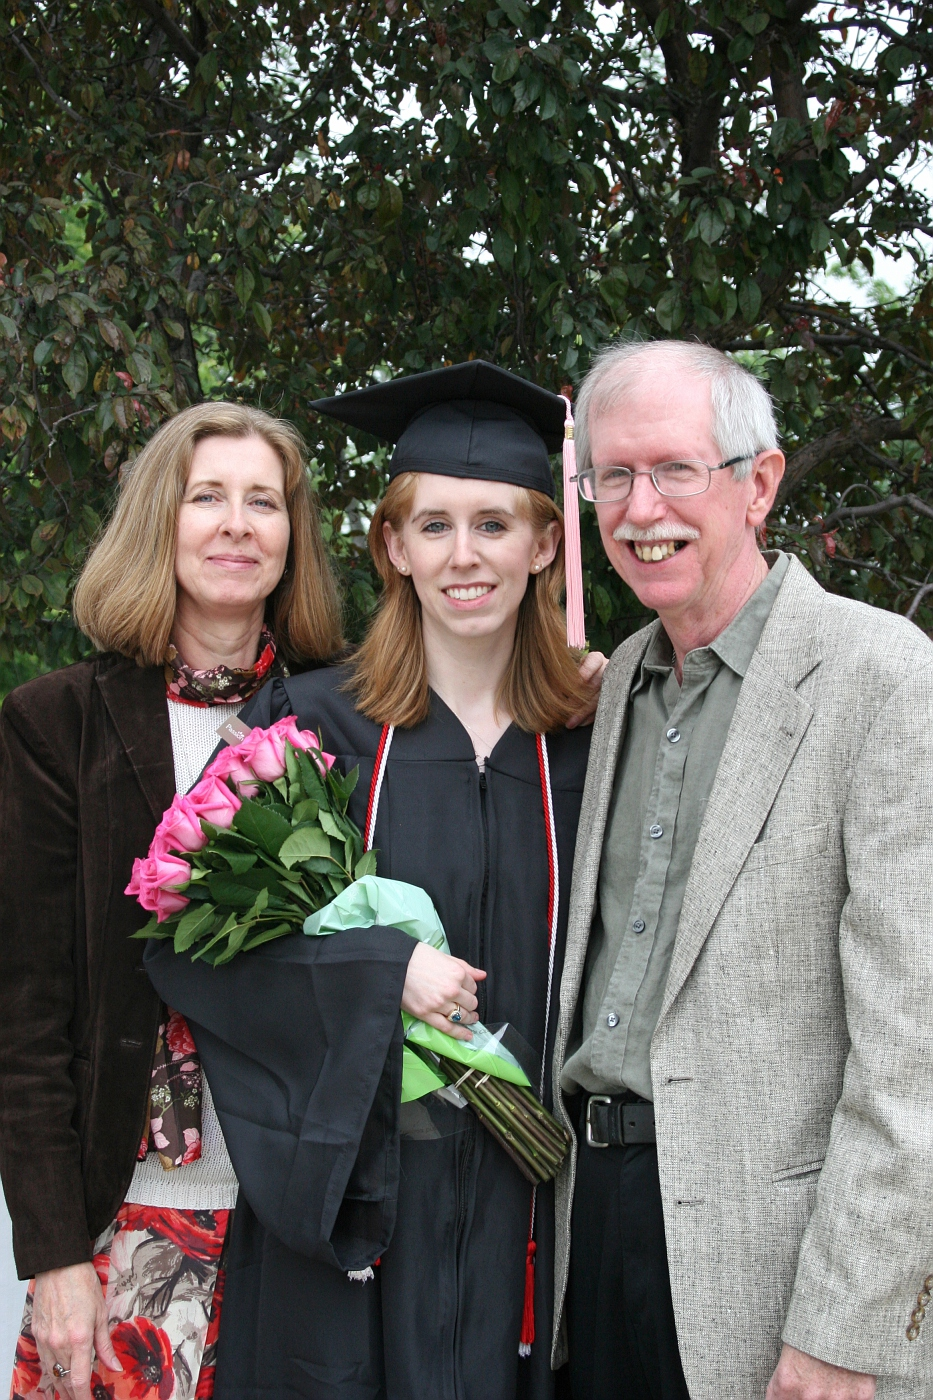 Graduation - Cindy, Shannon and Brian